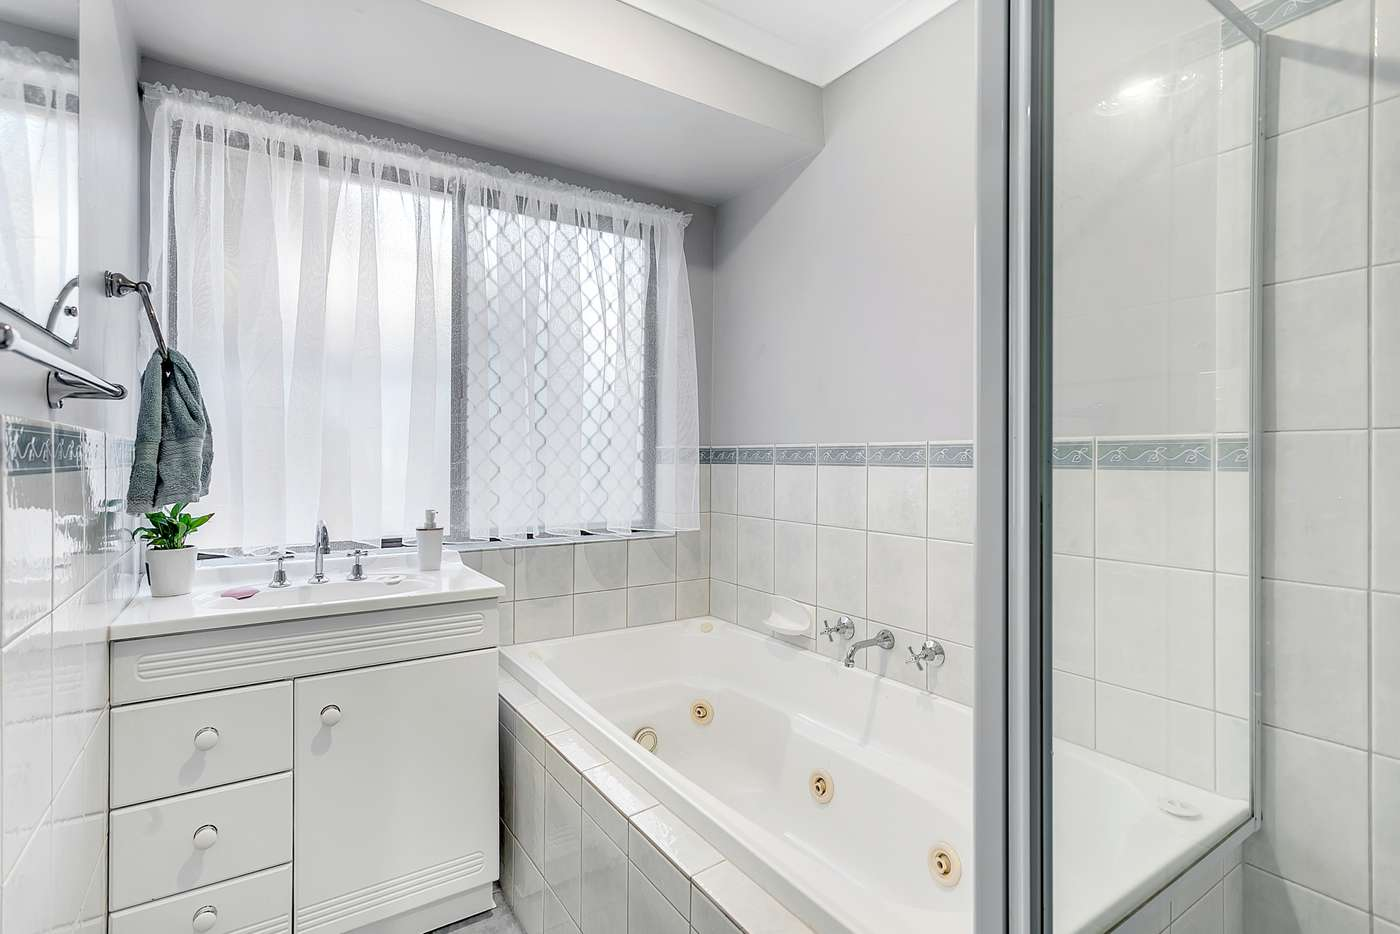 Fifth view of Homely house listing, 6 Virginia Drive, Morphett Vale SA 5162